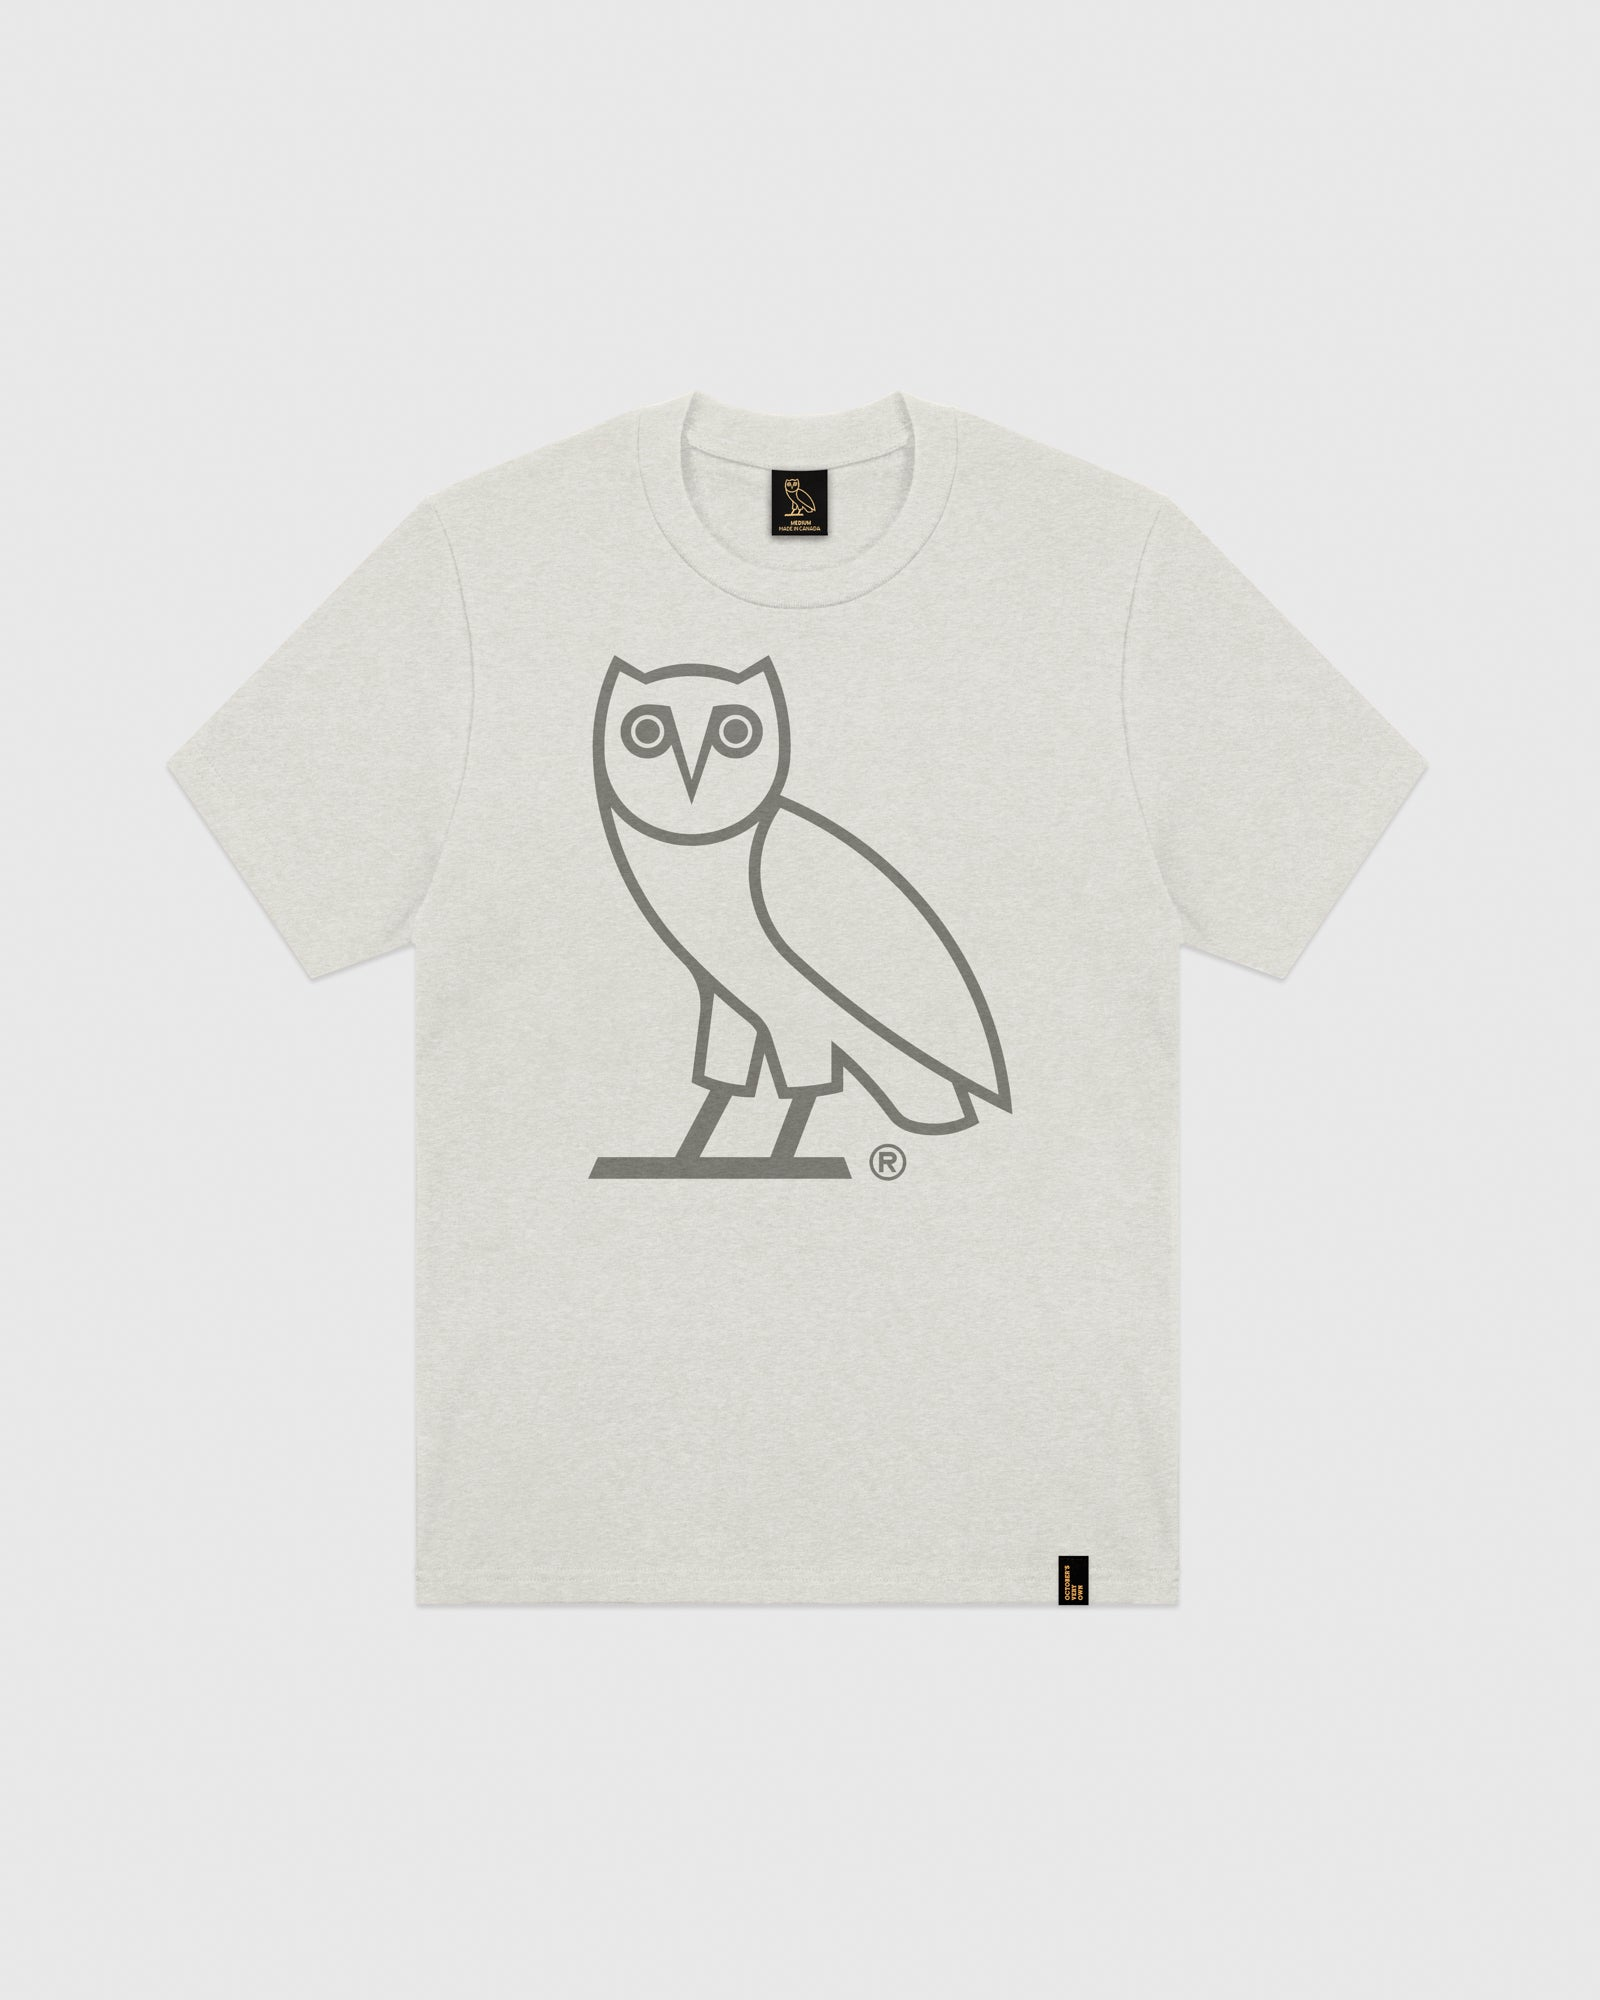 DISCHARGE OWL T-SHIRT - HEATHER LIGHT GREY IMAGE #1